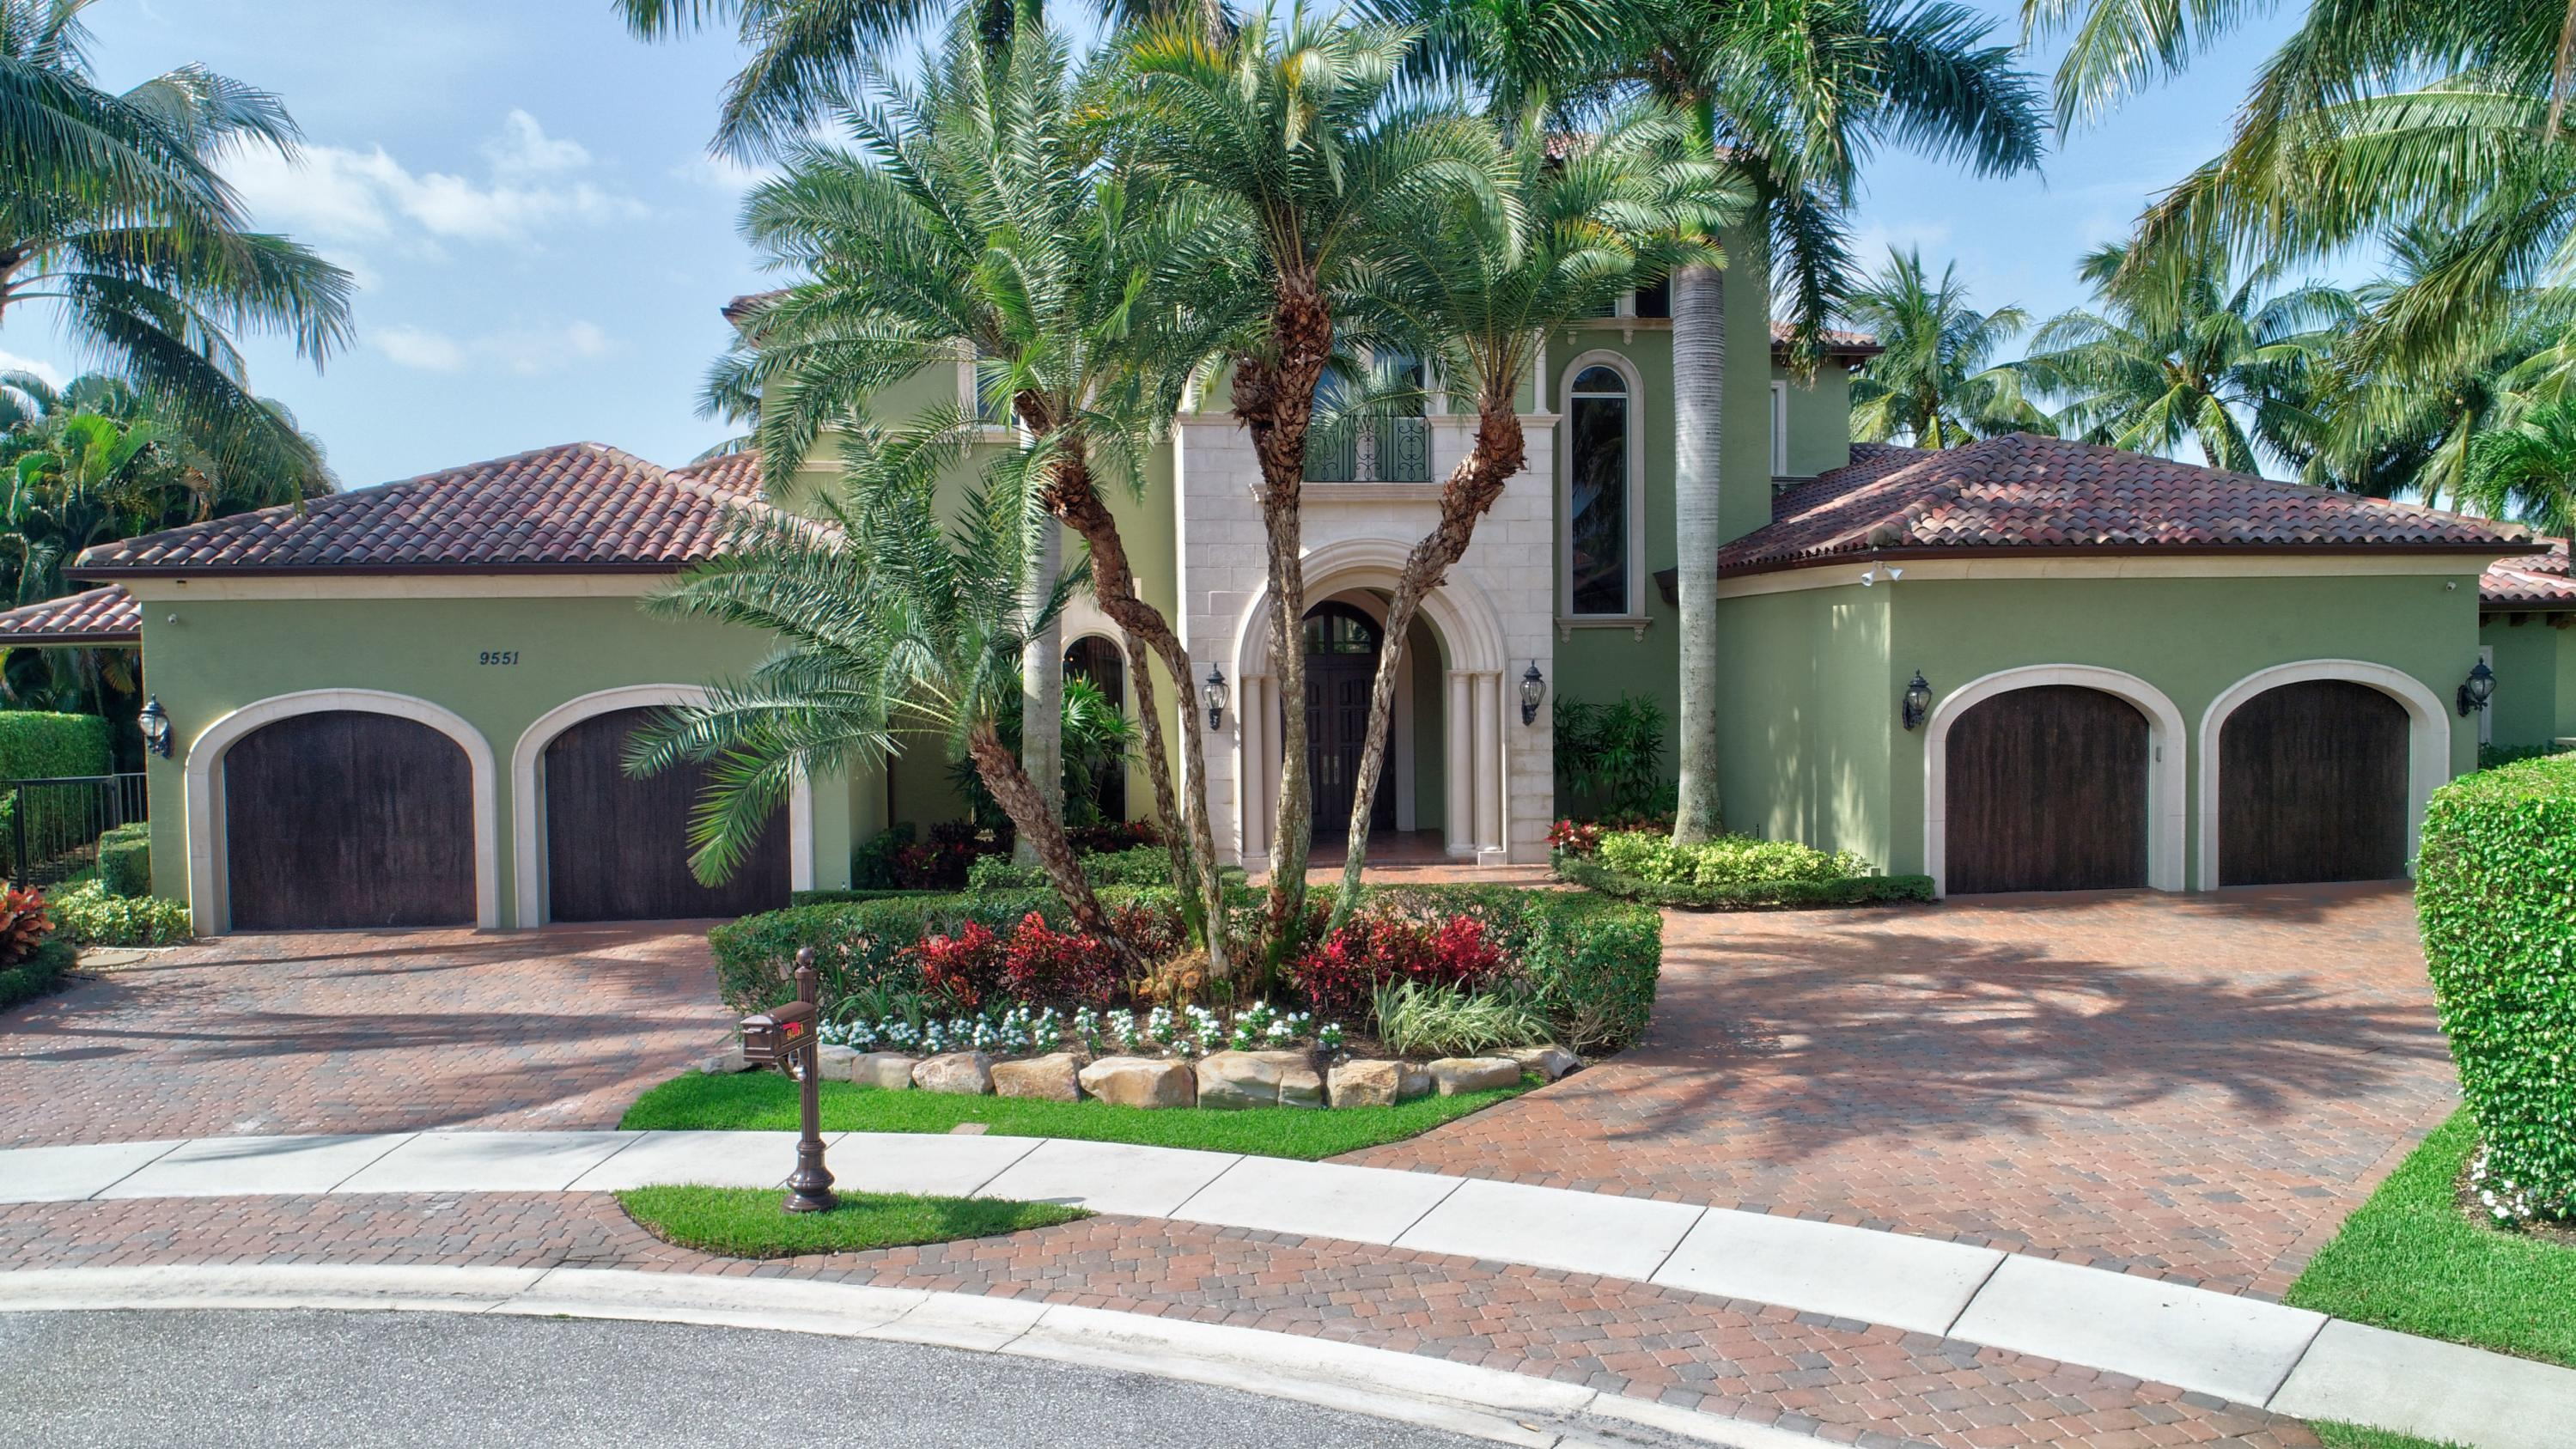 9551 Grand Estates Way  Boca Raton, FL 33496